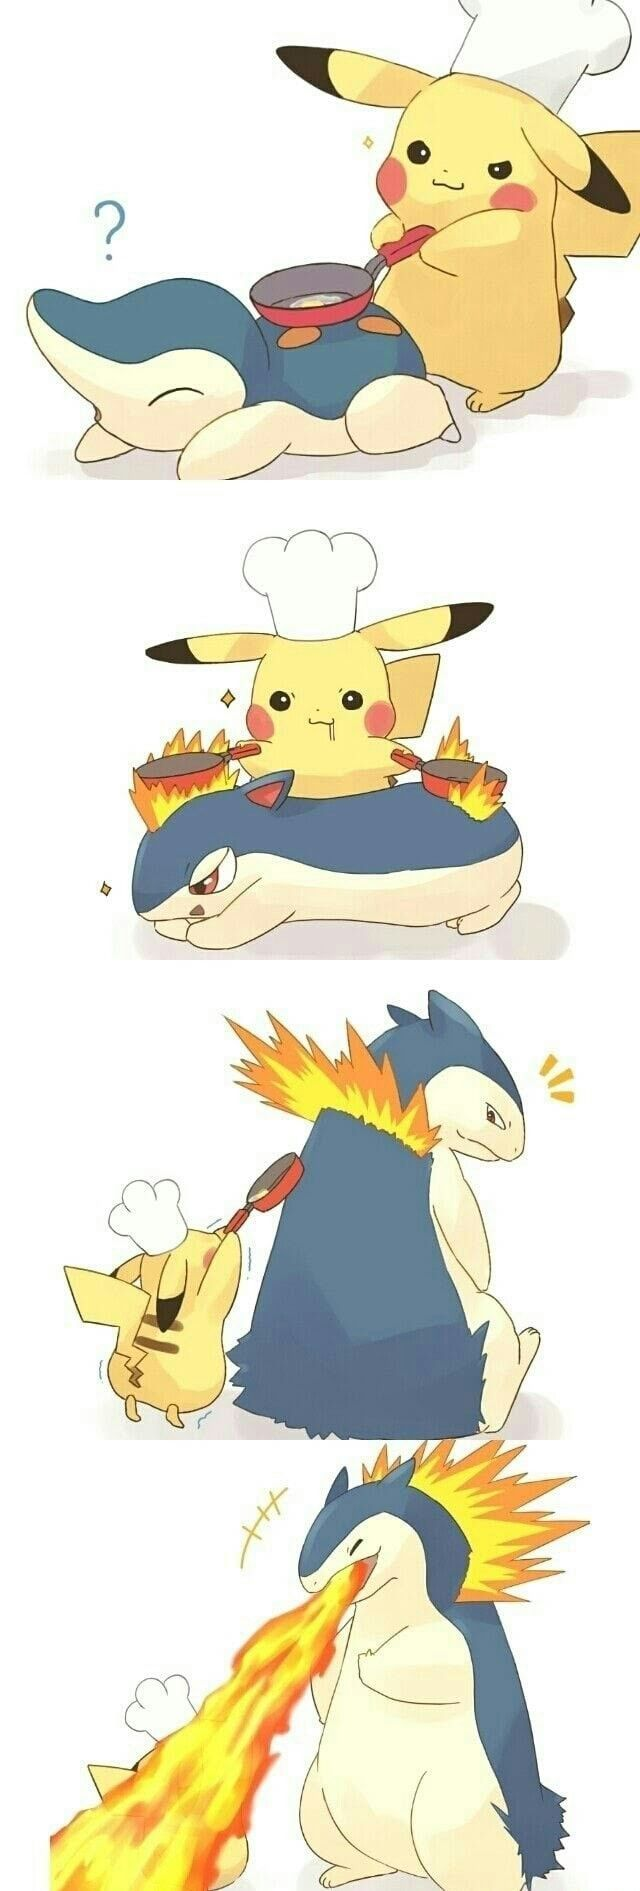 See what happens when  you don't use A stool for higher things - pokemon